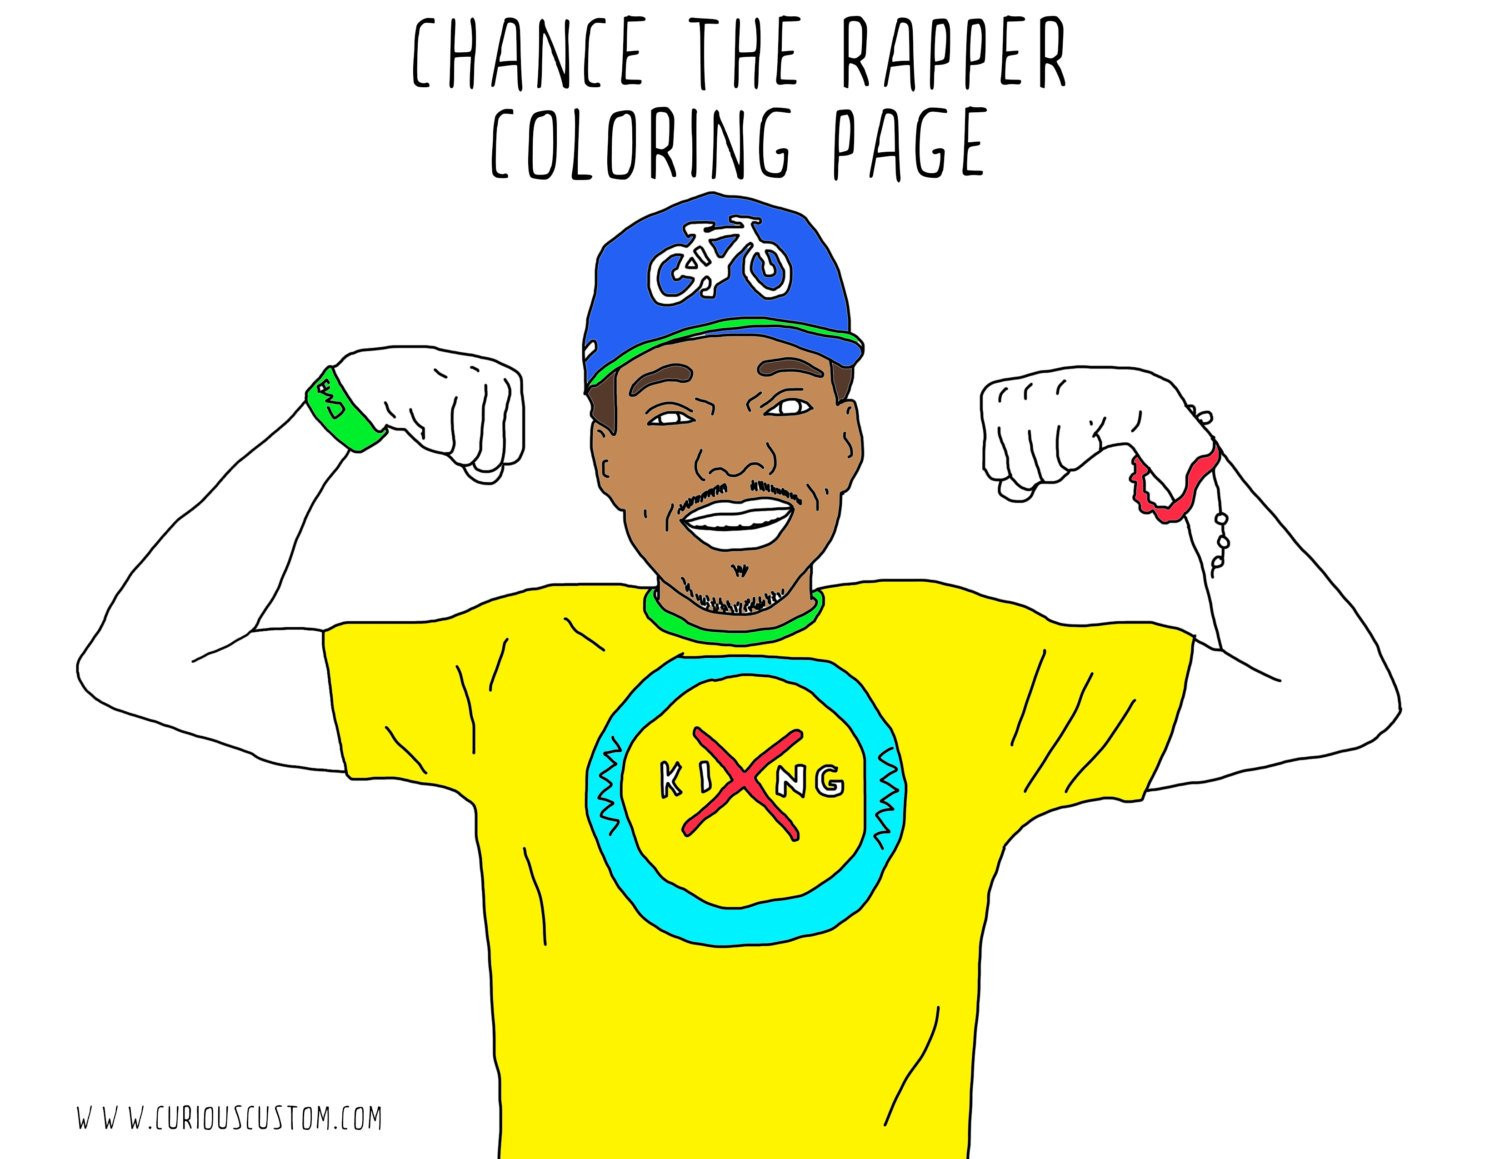 Coloring Book Chance The Rapper  Chance The Rapper Adult Coloring Page Rapper Coloring Book